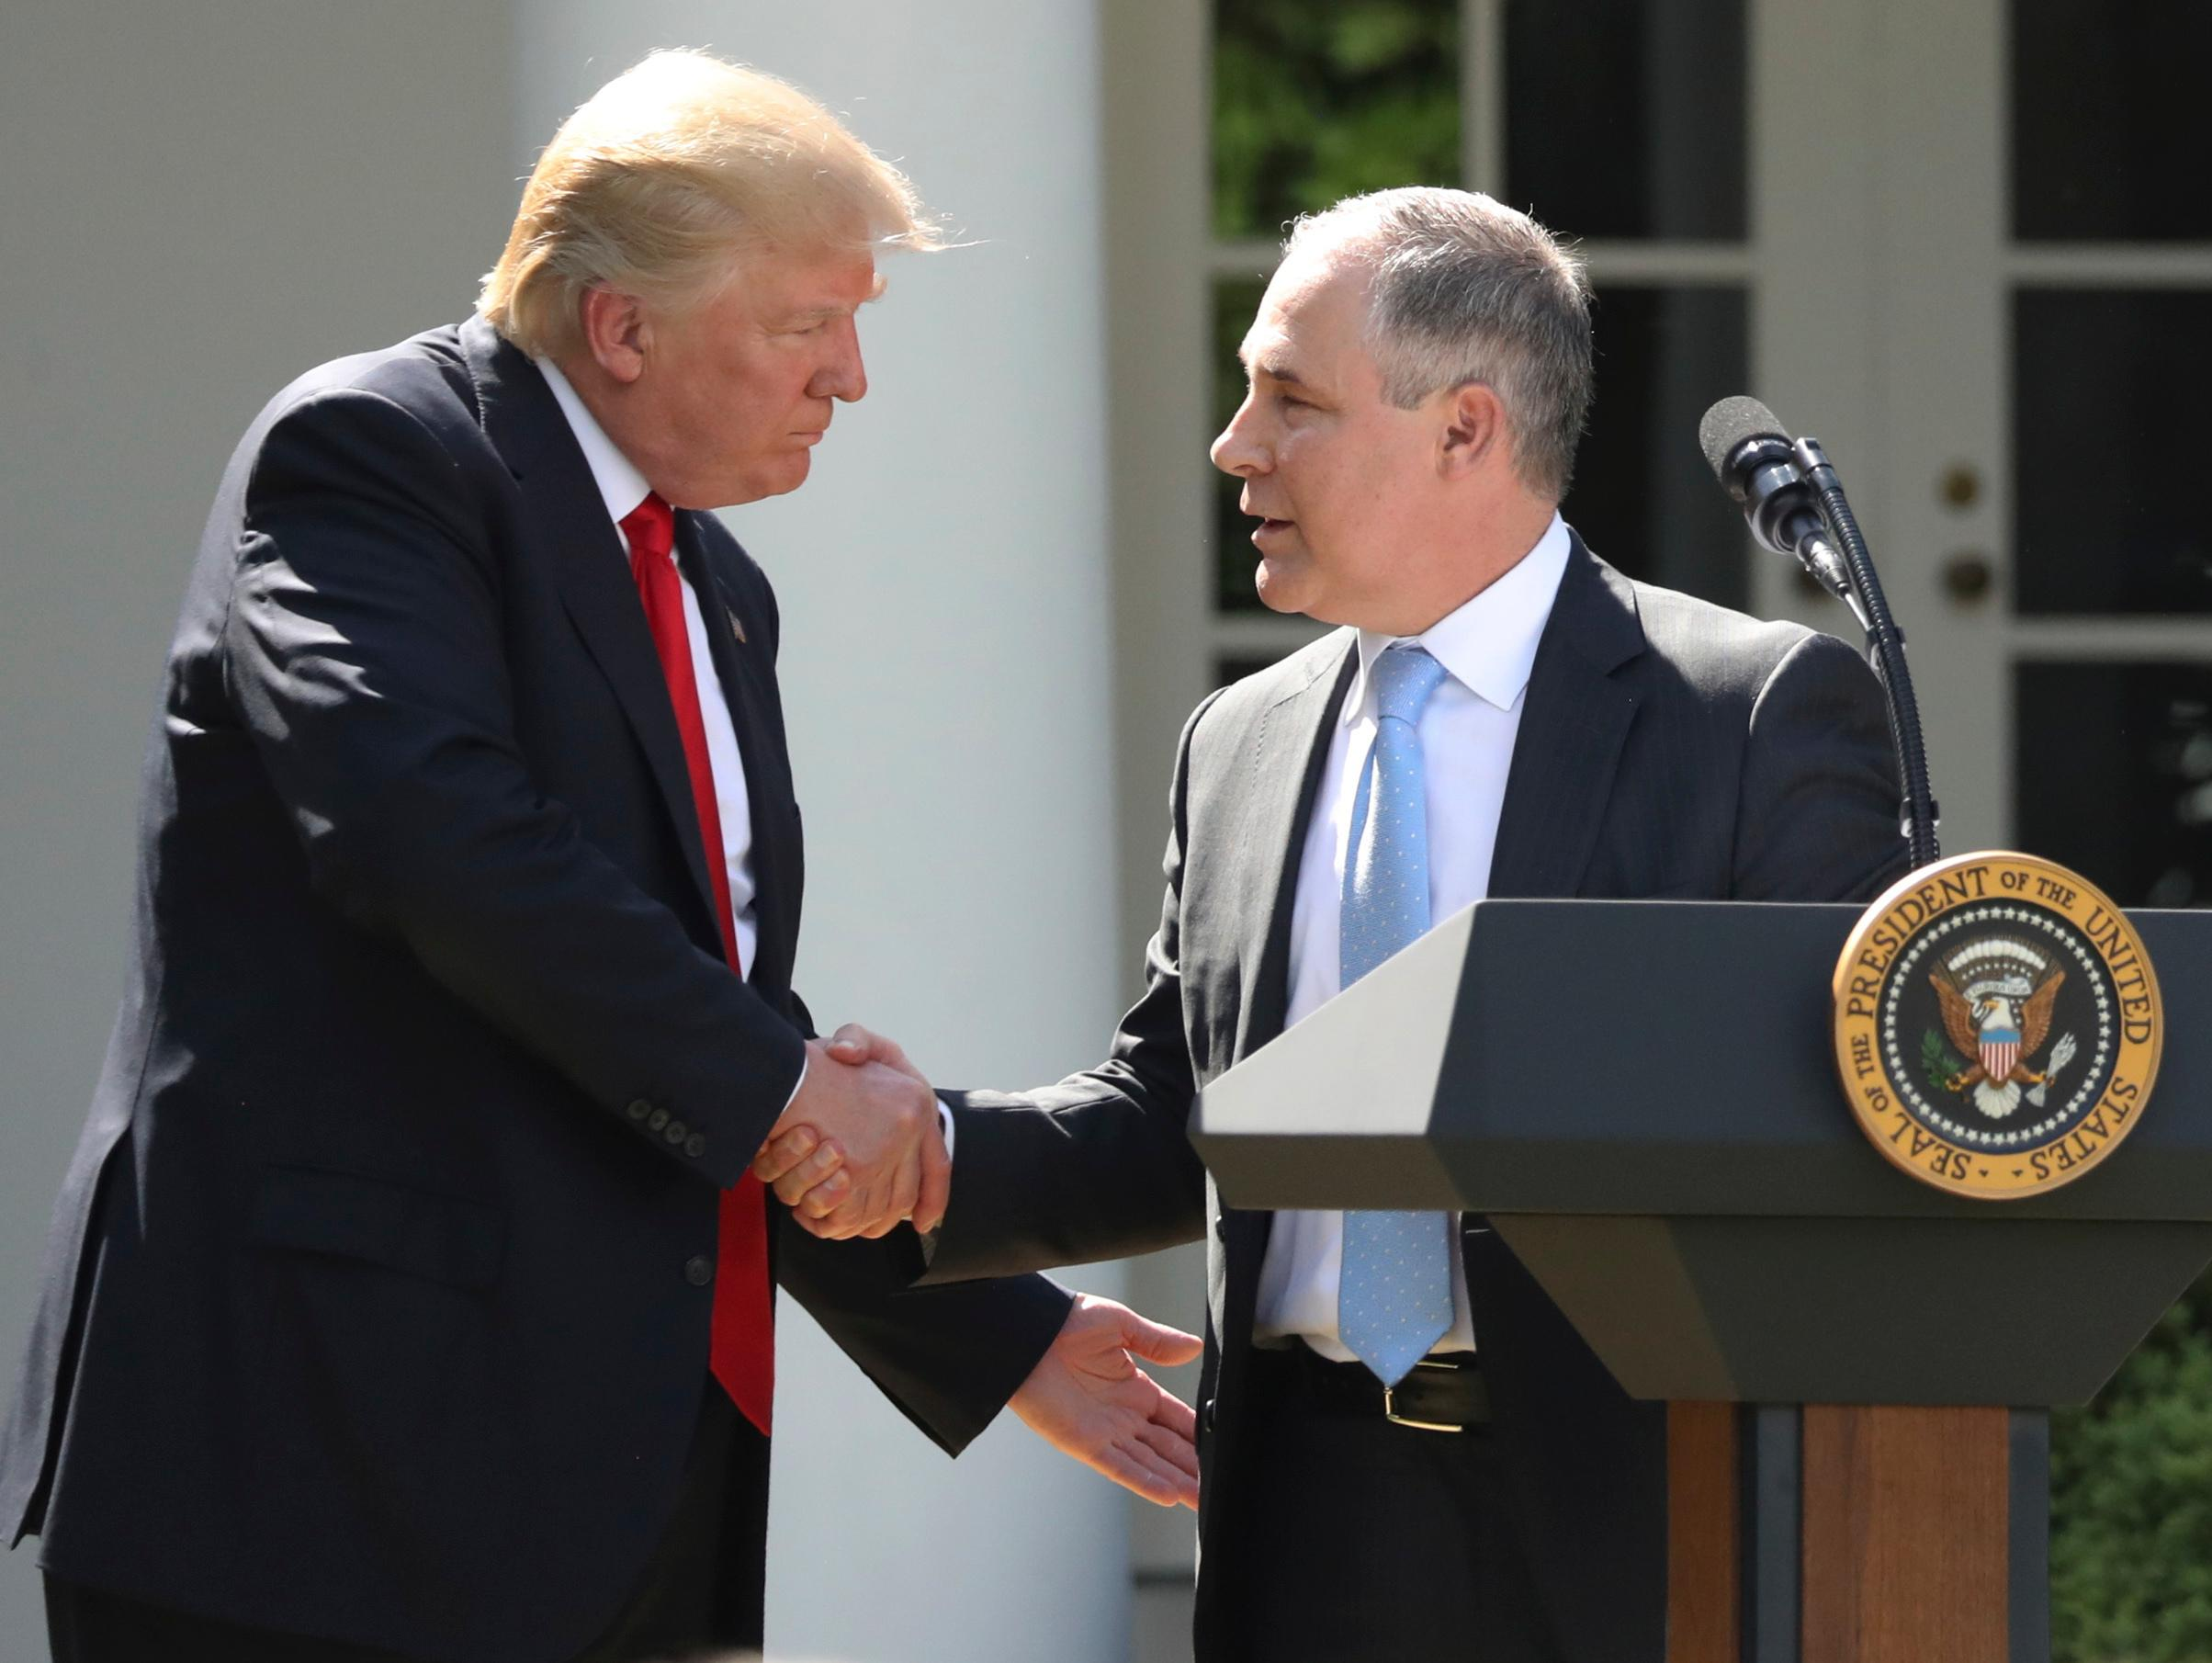 FILE - In this June 1, 2017 file photo, President Donald Trump shakes hands with EPA Administrator Scott Pruitt after speaking about the U.S. role in the Paris climate change accord in the Rose Garden of the White House in Washington. Trump and his cabinet often avoid talking about the science of climate change, but when pressed what they have said clashes with established mainstream science, data and peer-reviewed studies and reports. (AP Photo/Andrew Harnik, File)